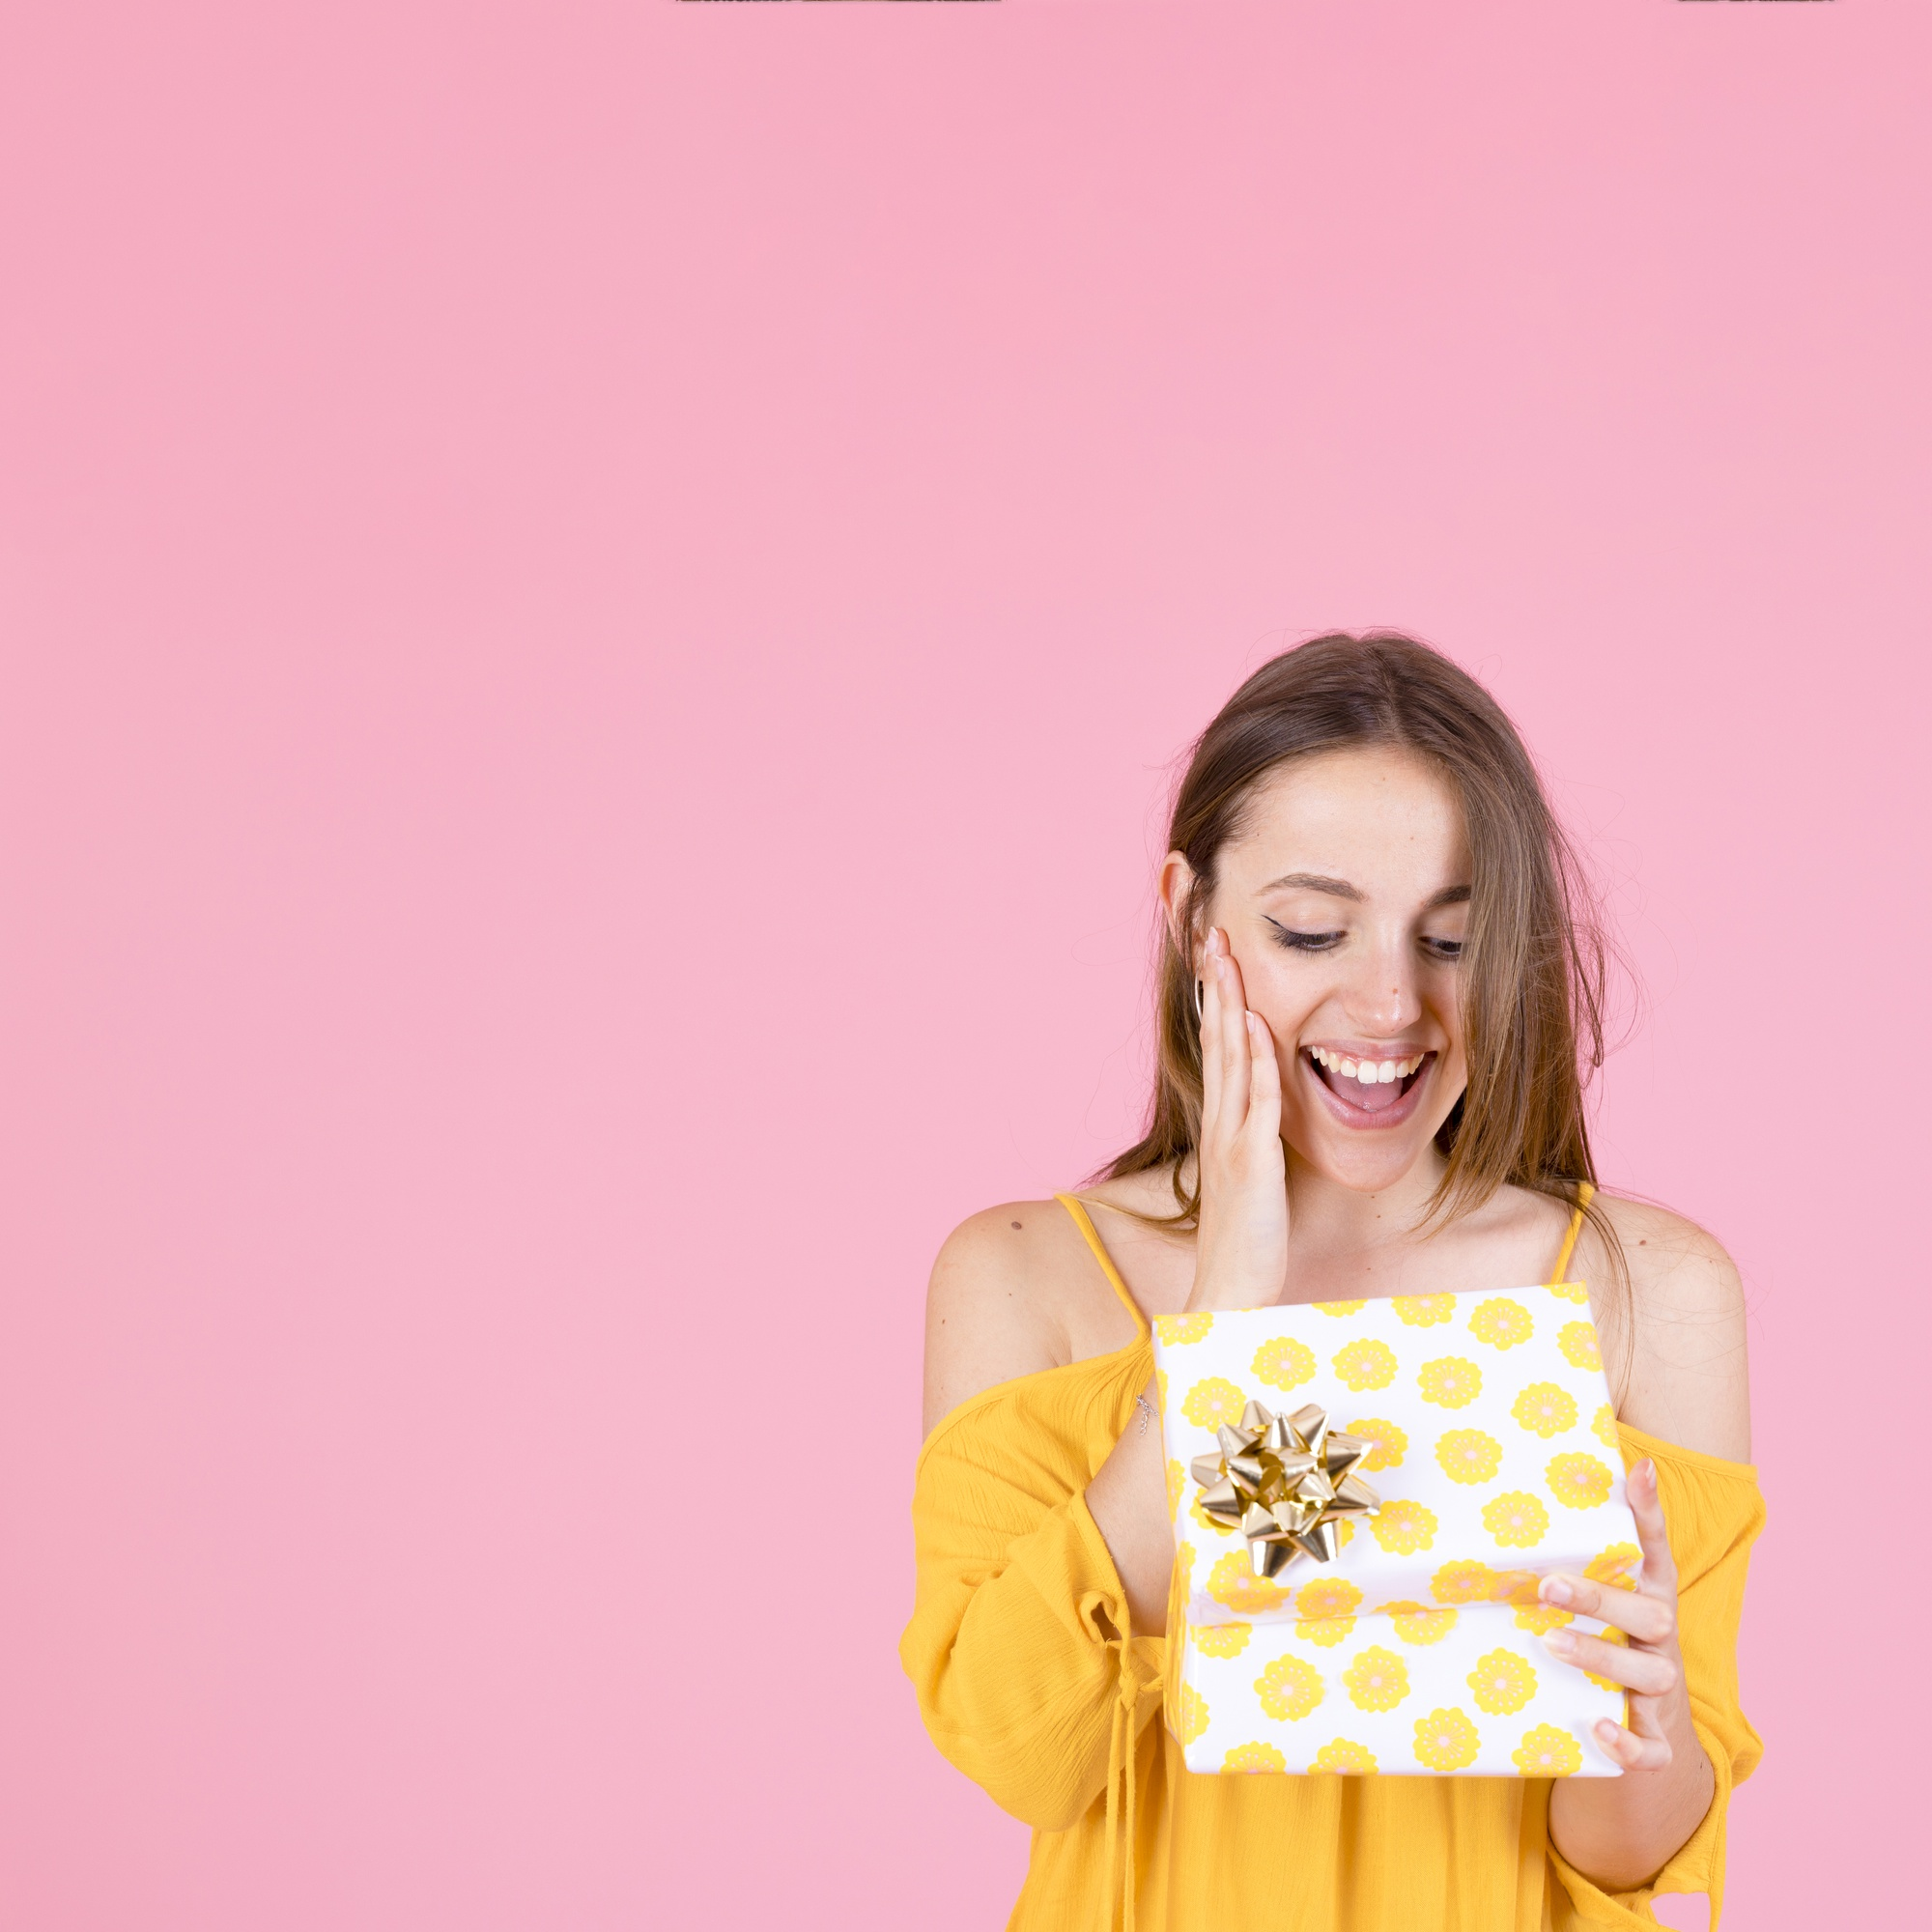 Surprised young woman opening yellow polka dot present box with golden bow